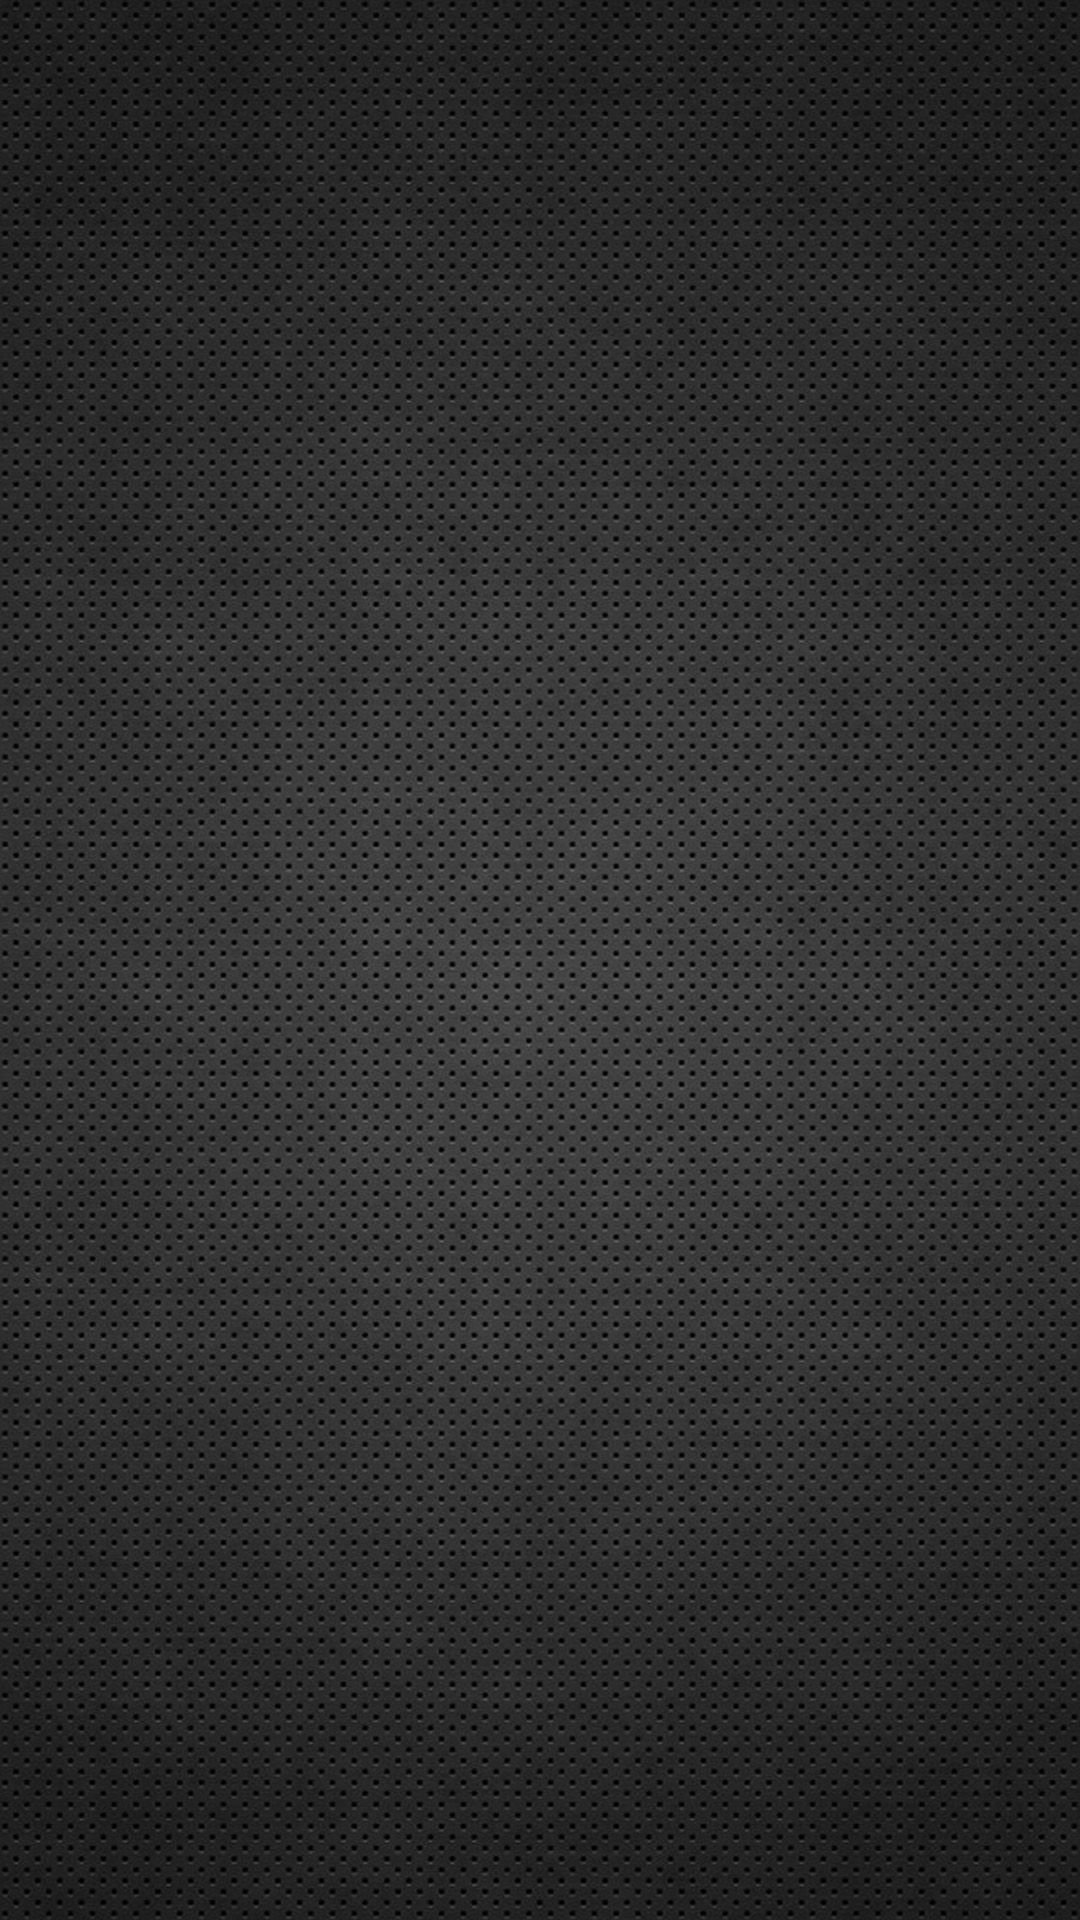 Samsung Galaxy S5 Wallpapers   Texture 12   Shy Android 1080x1920